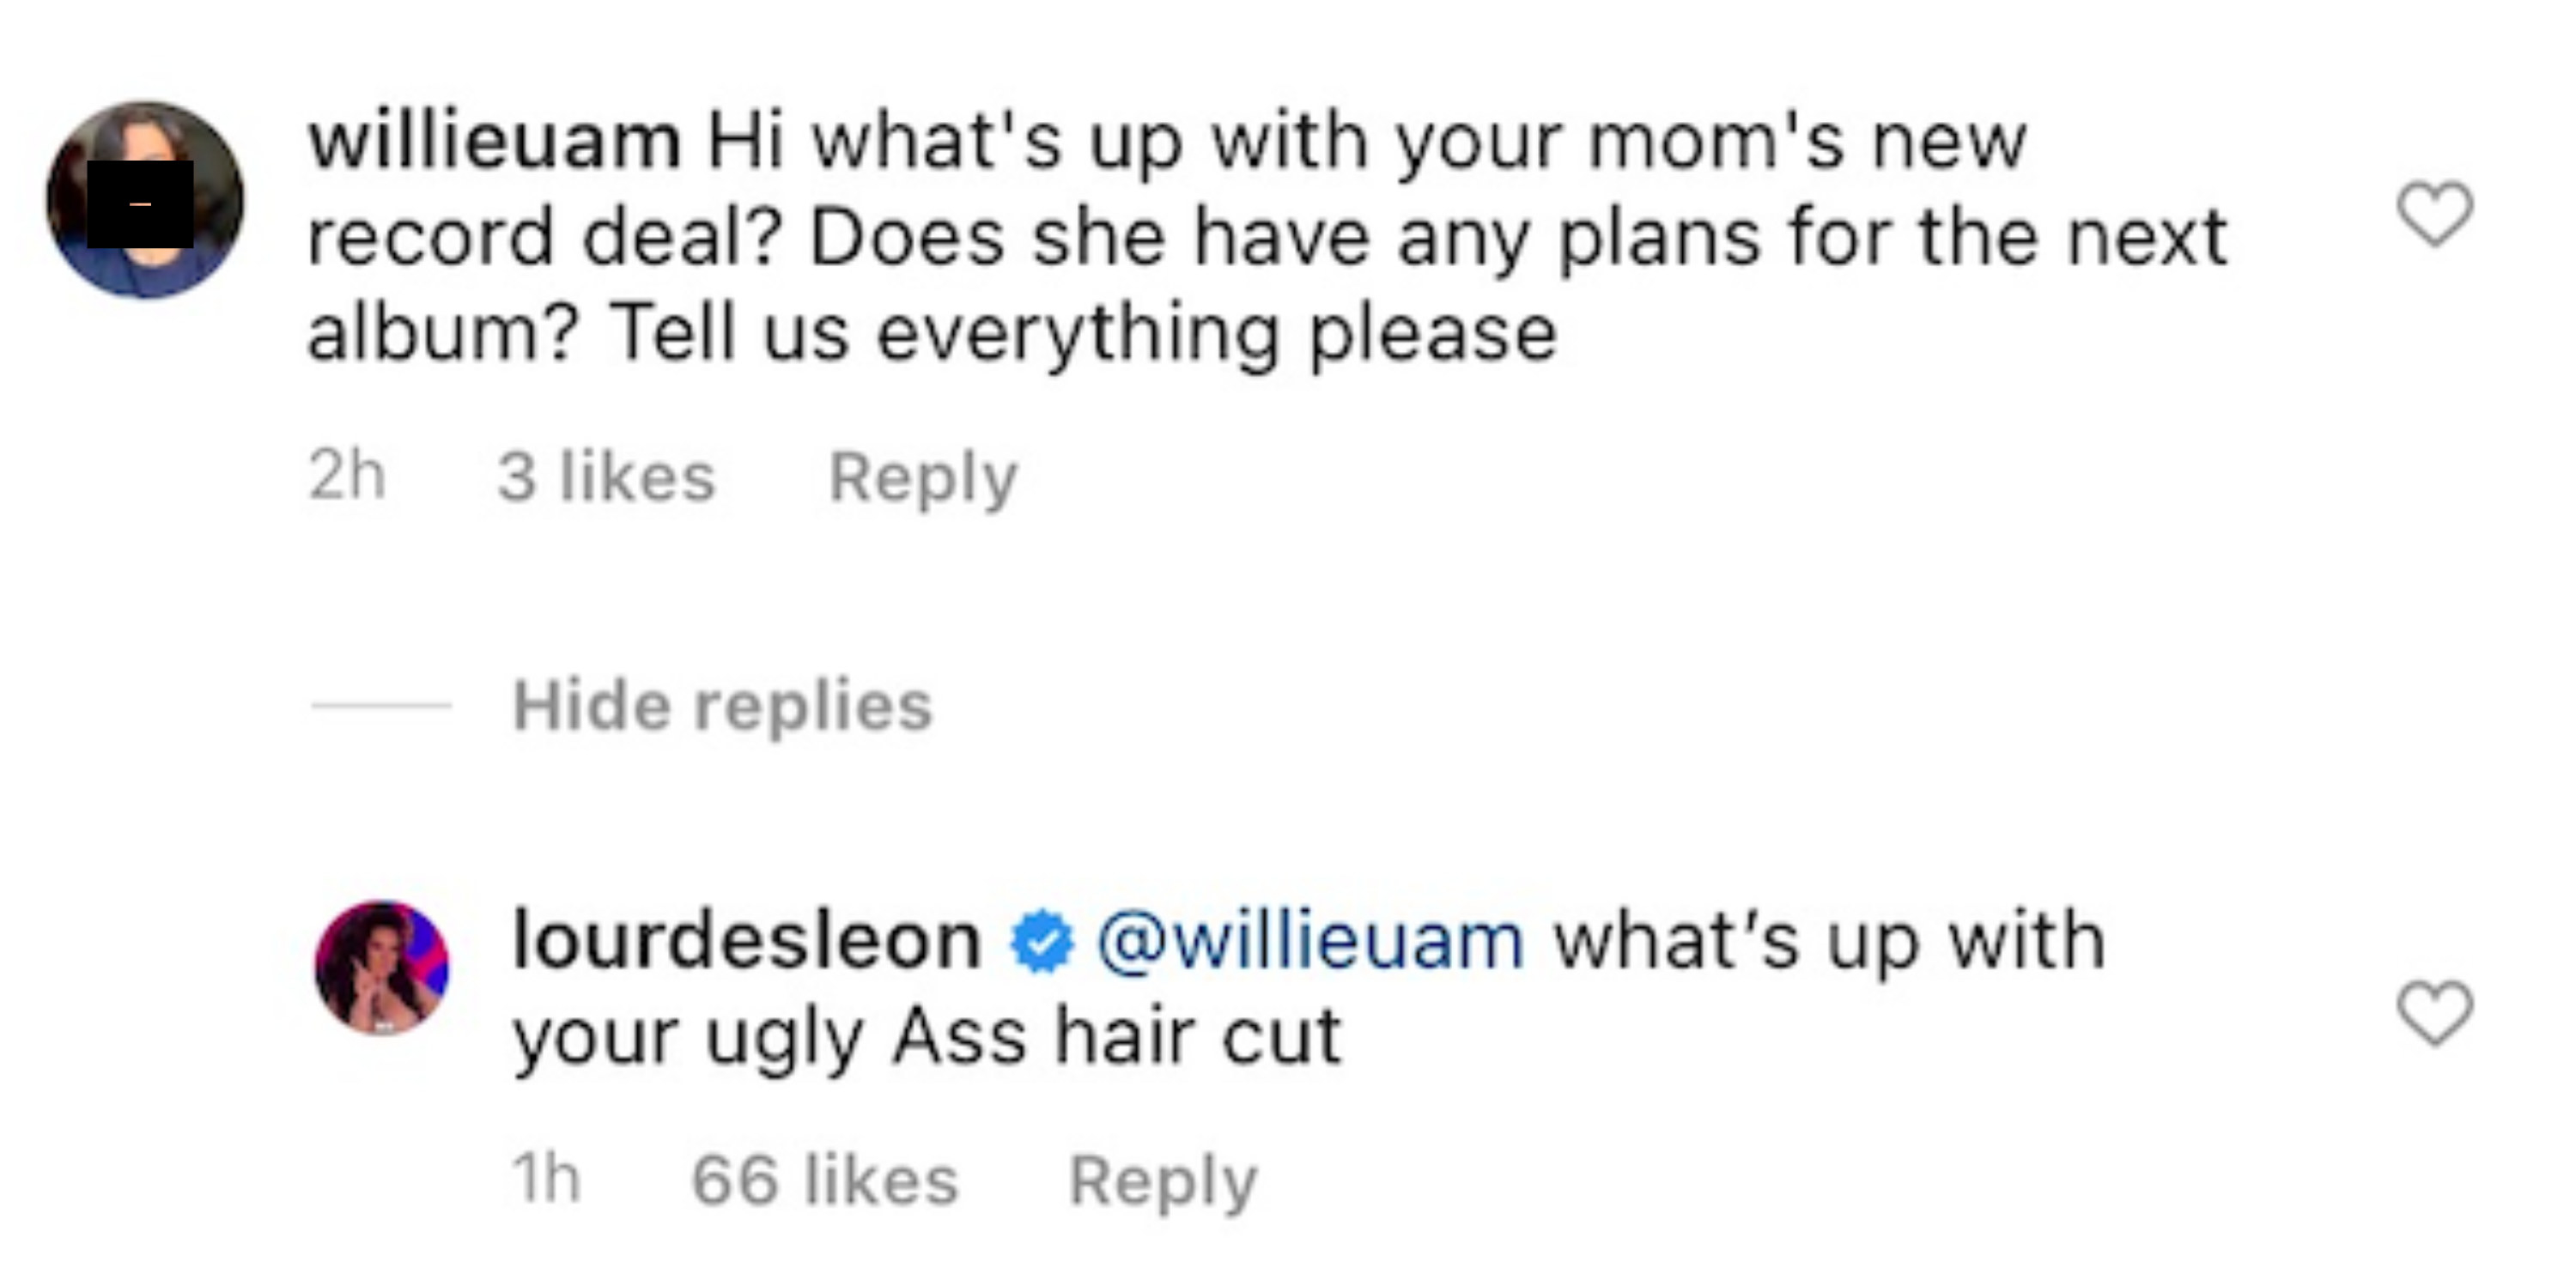 Lourdes asked a commenter who asked about her mother's record deal about their ugly ass hair cut